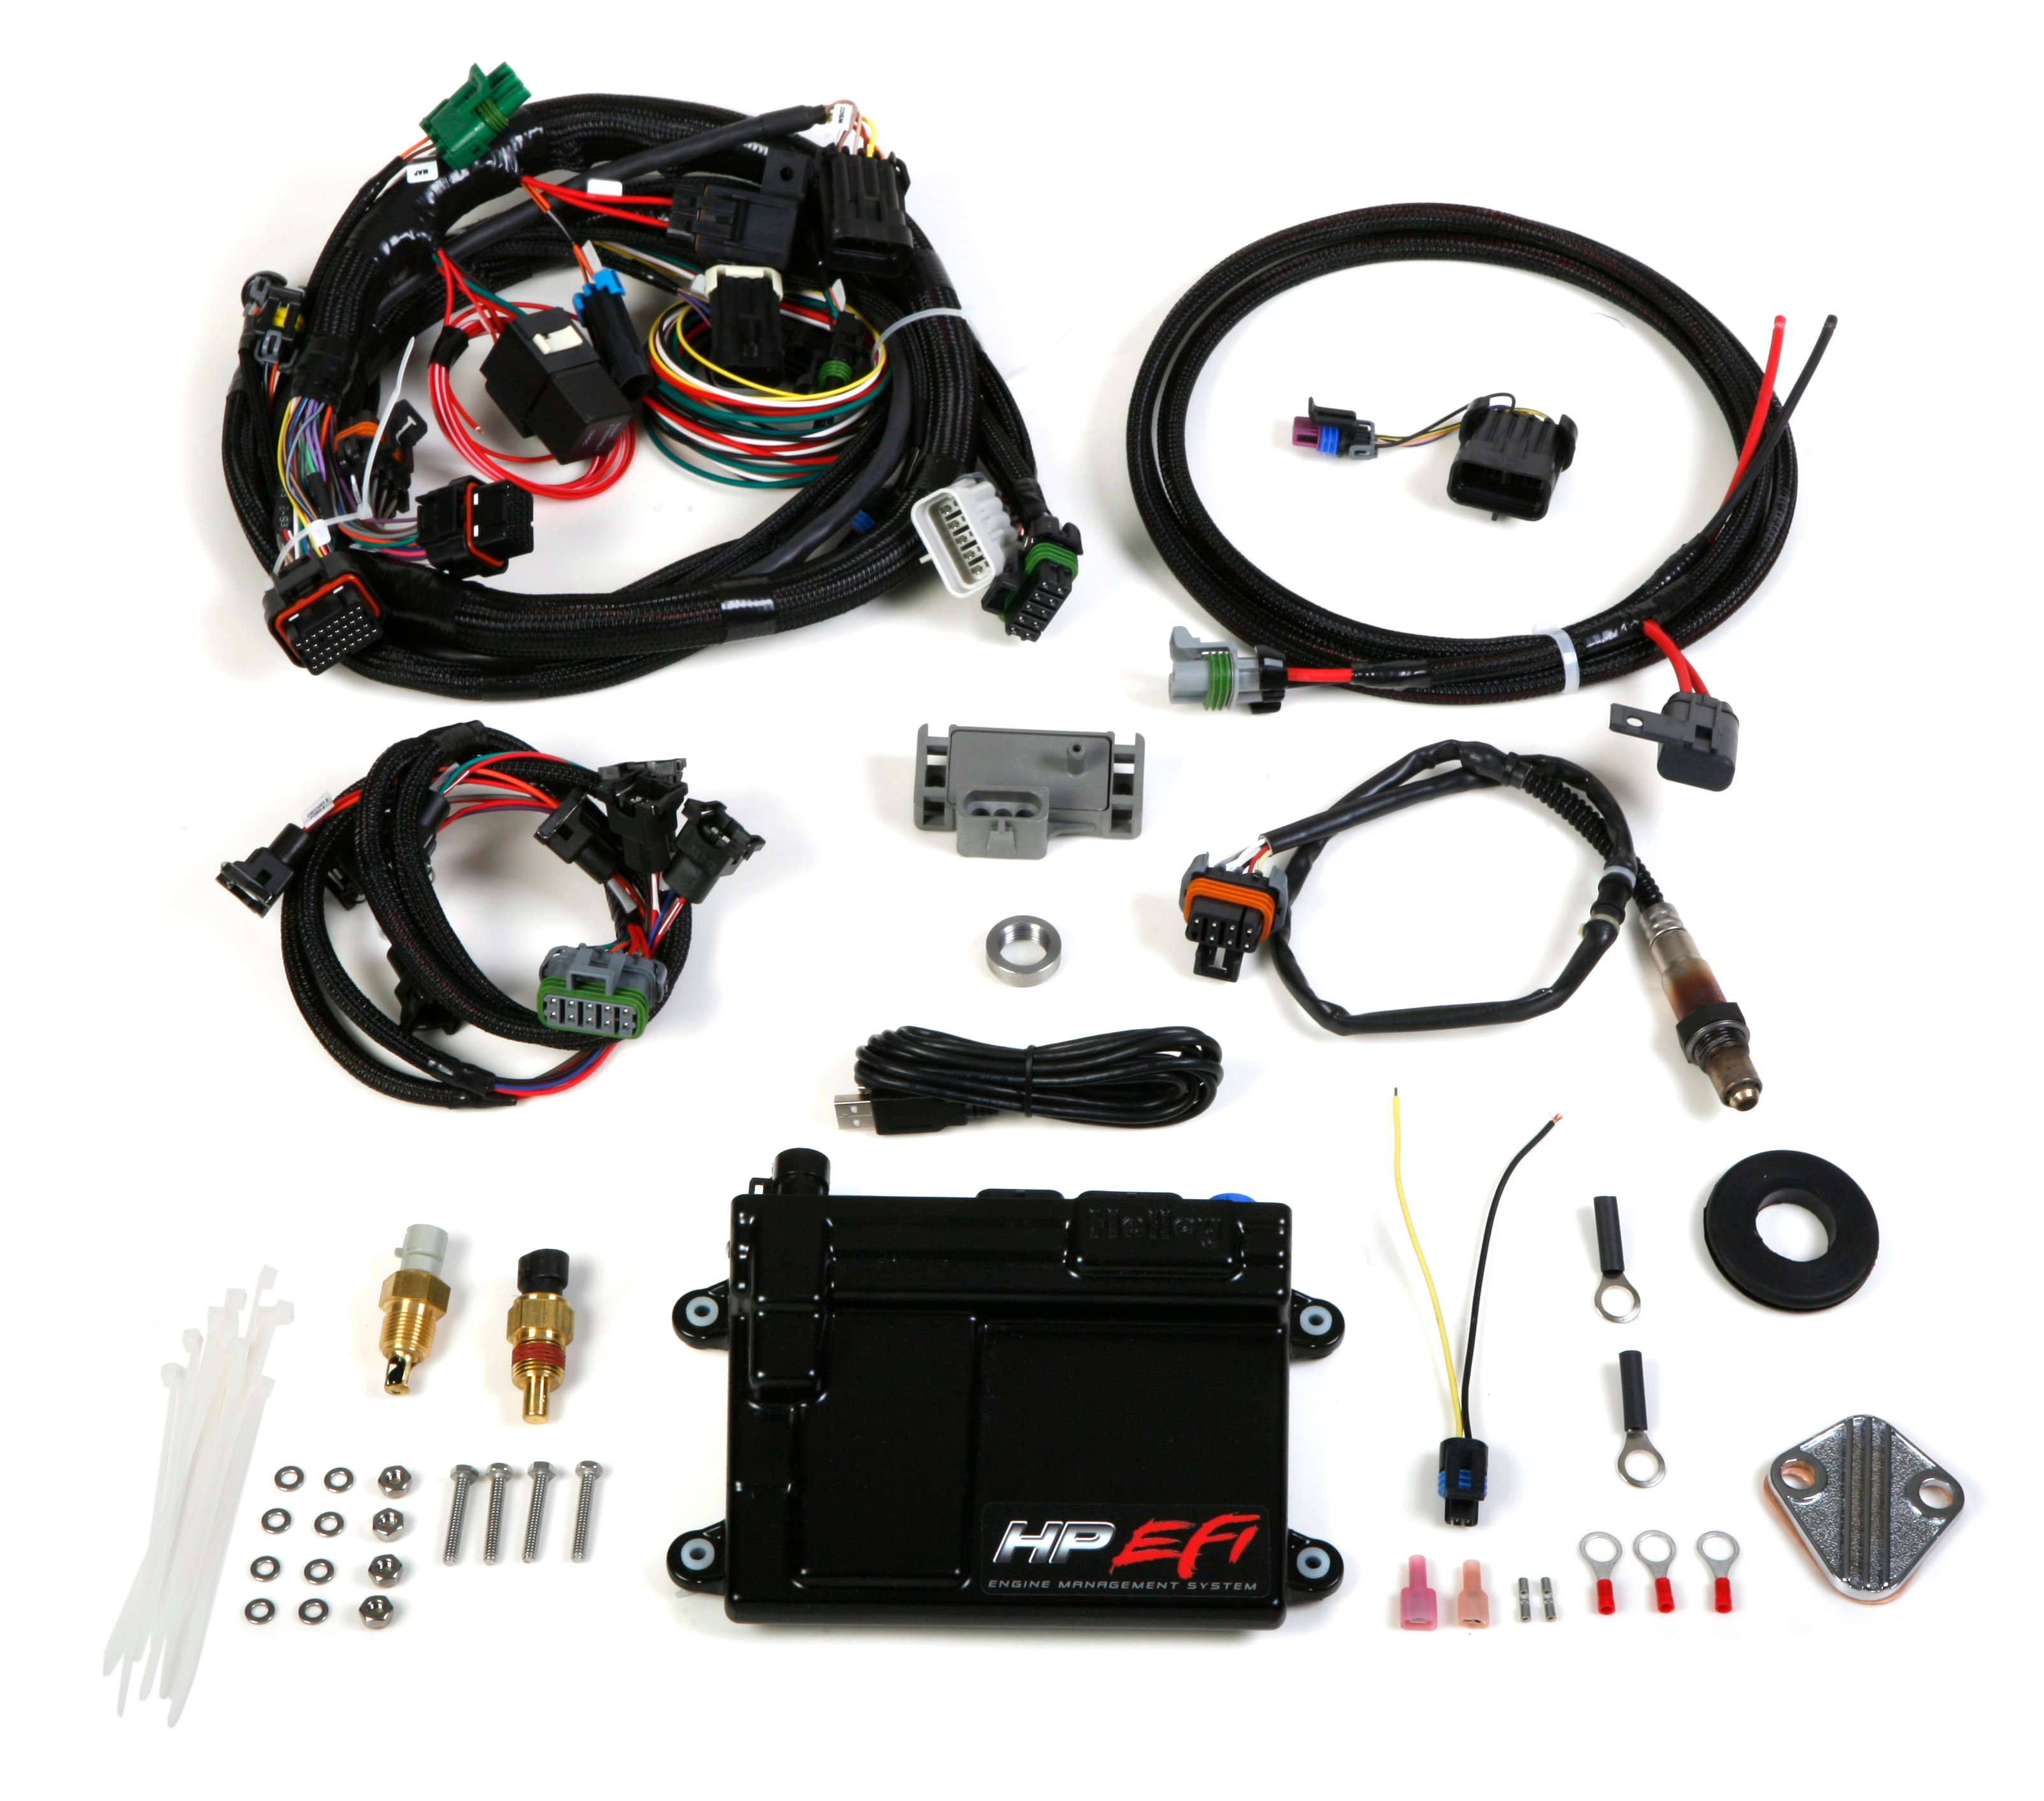 Holley Efi 550 601 Hp Ecu Harness Kits Gm Dis Ignition Module Larger Image